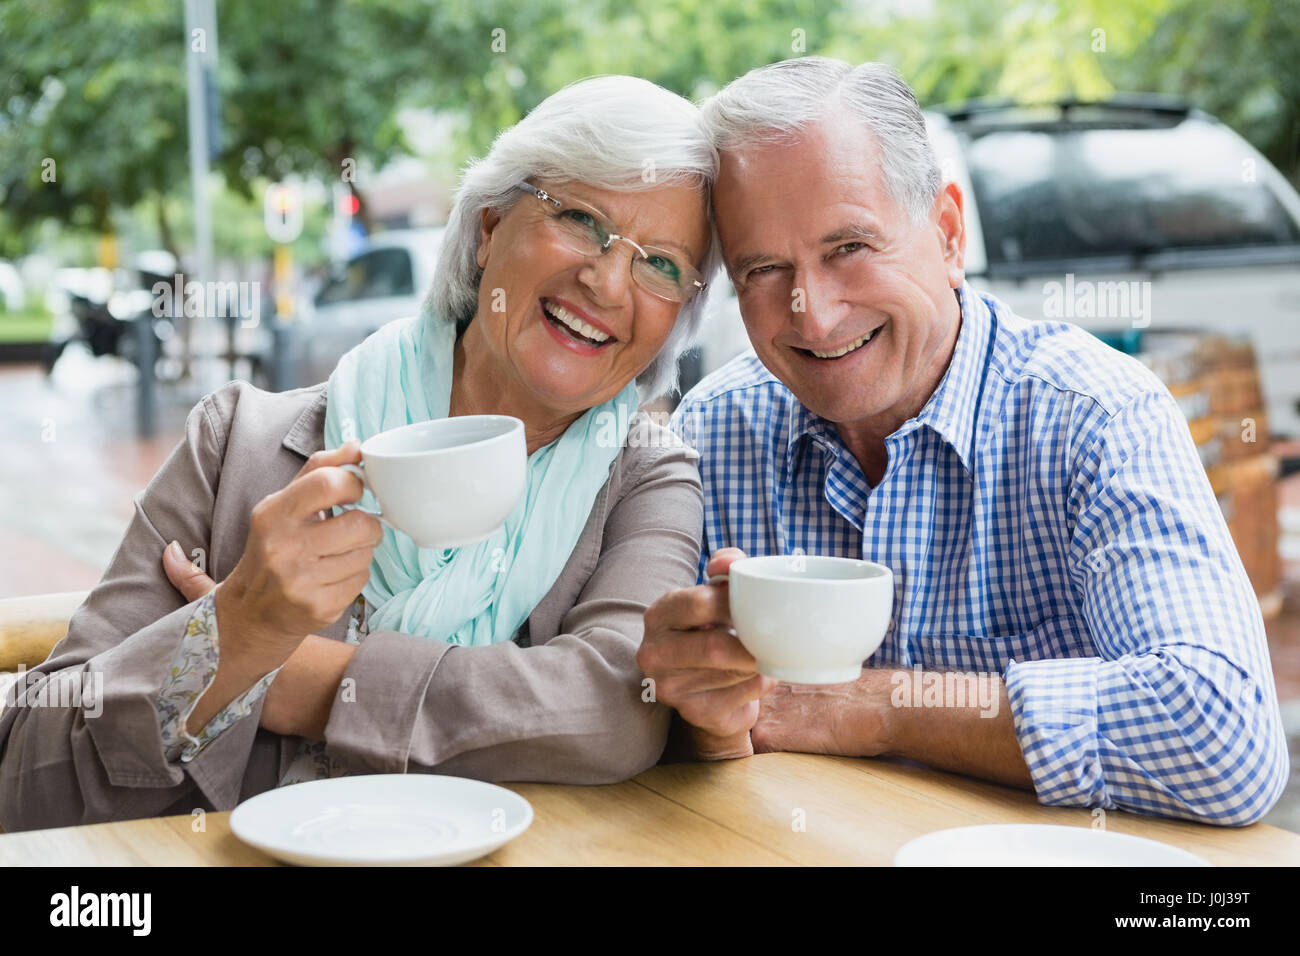 Portrait of senior couple having coffee in outdoor café - Stock Image